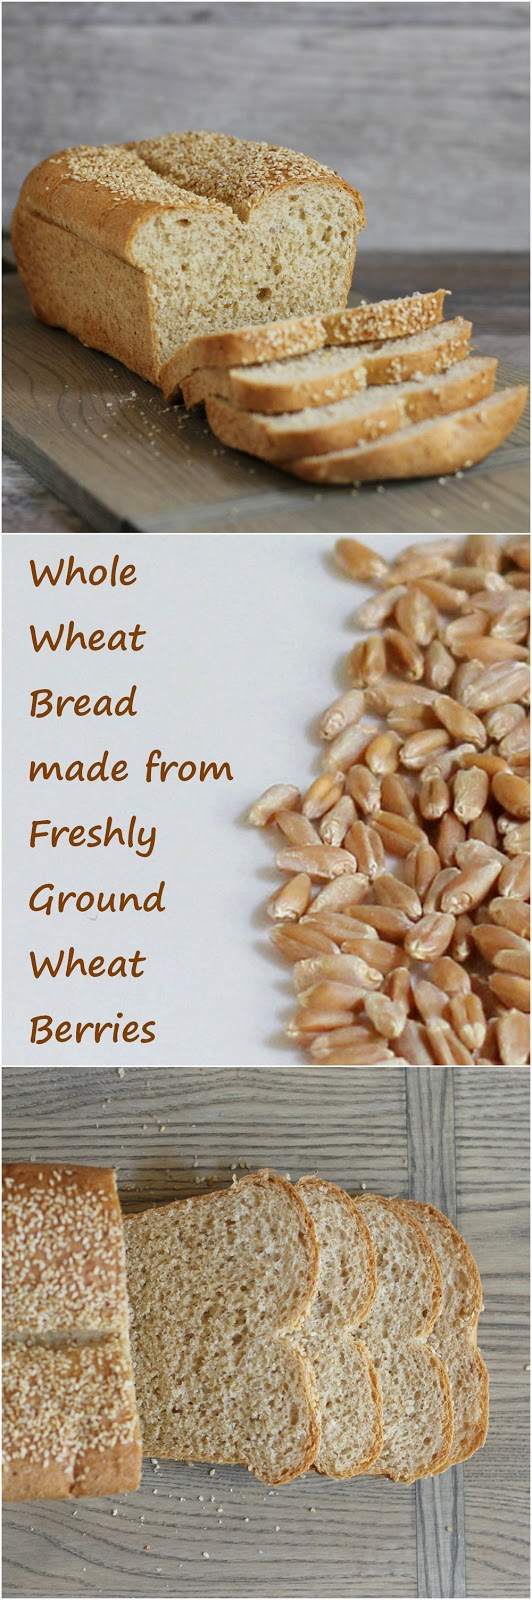 Whole wheat bread made from freshly ground wheat berries